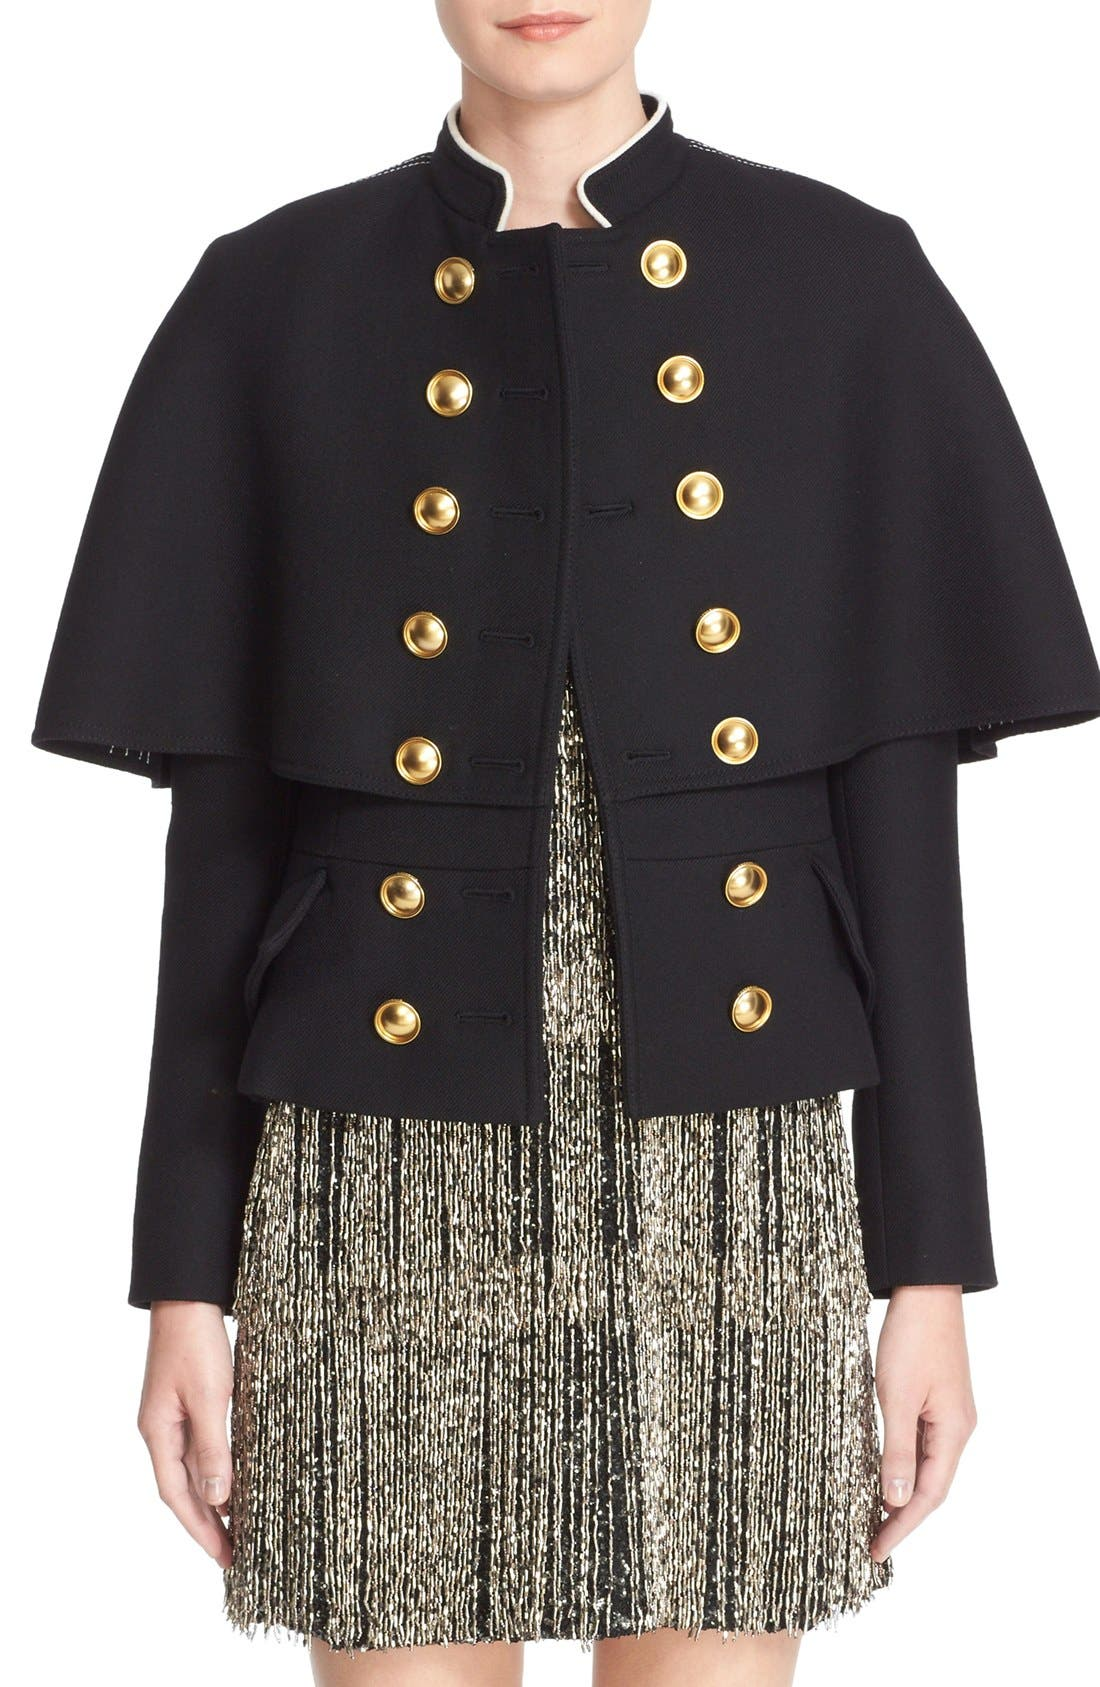 Burberry Prorsum Military Cape Coat | Nordstrom